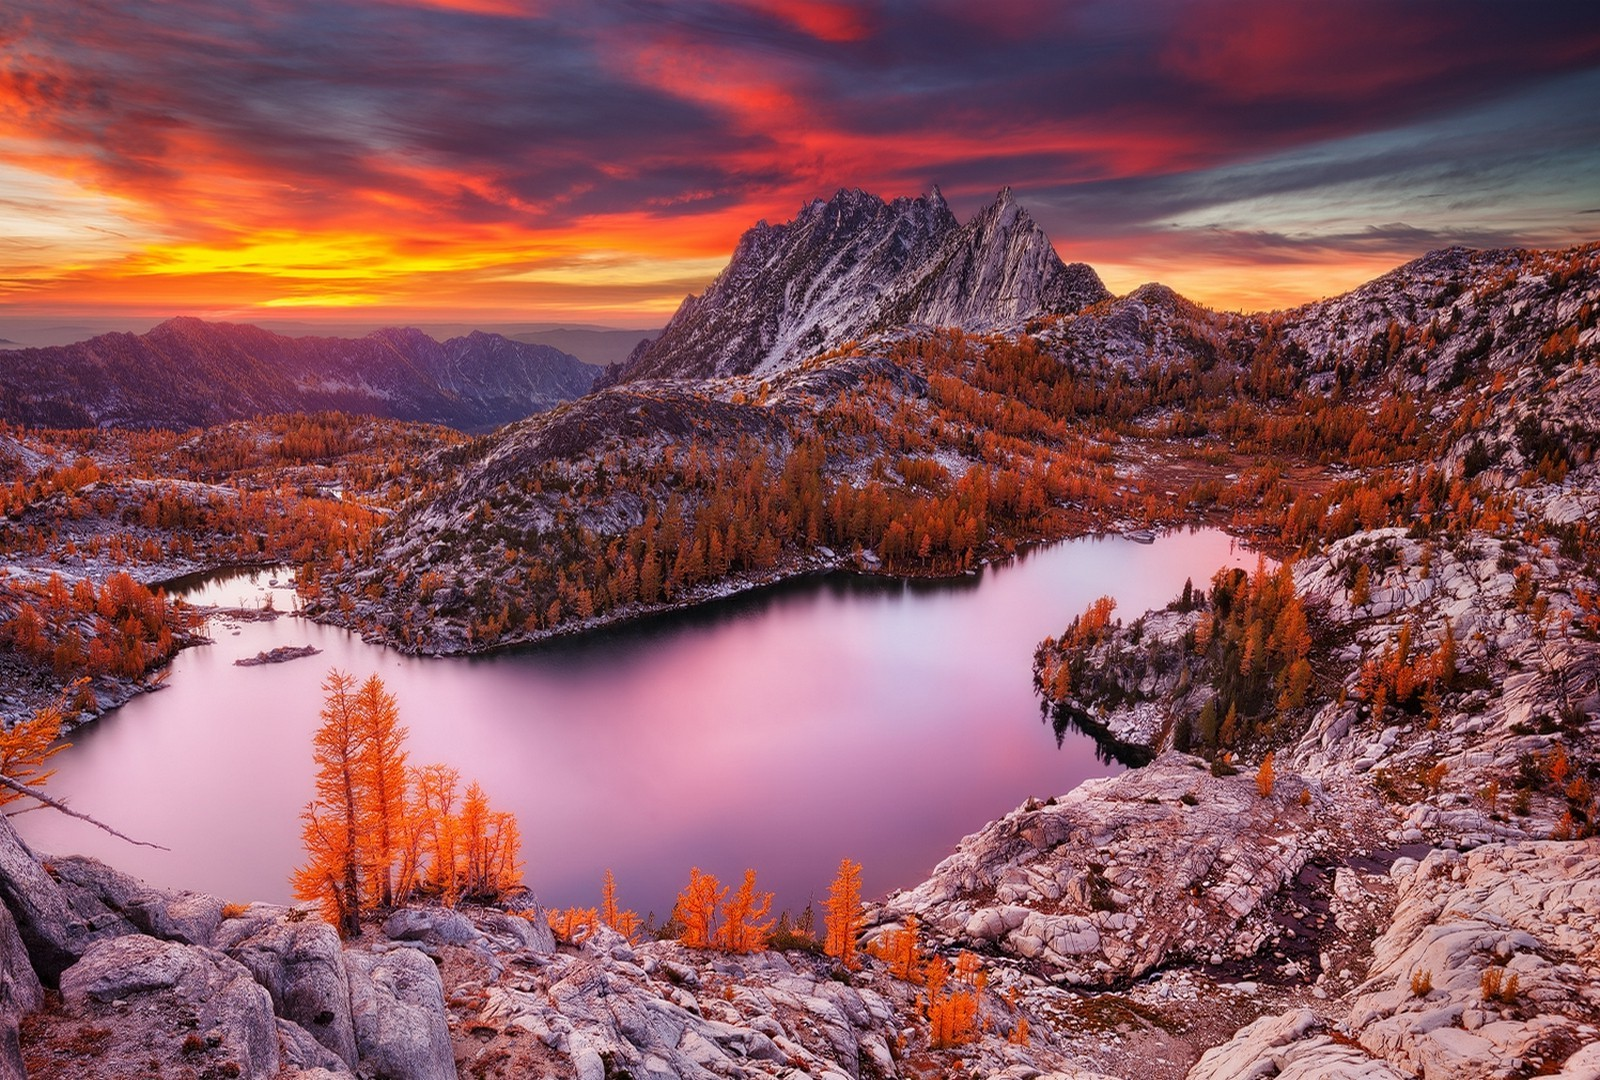 Uhd Wallpapers Fall Nature Landscape Lake Mountain Sunset Fall Forest